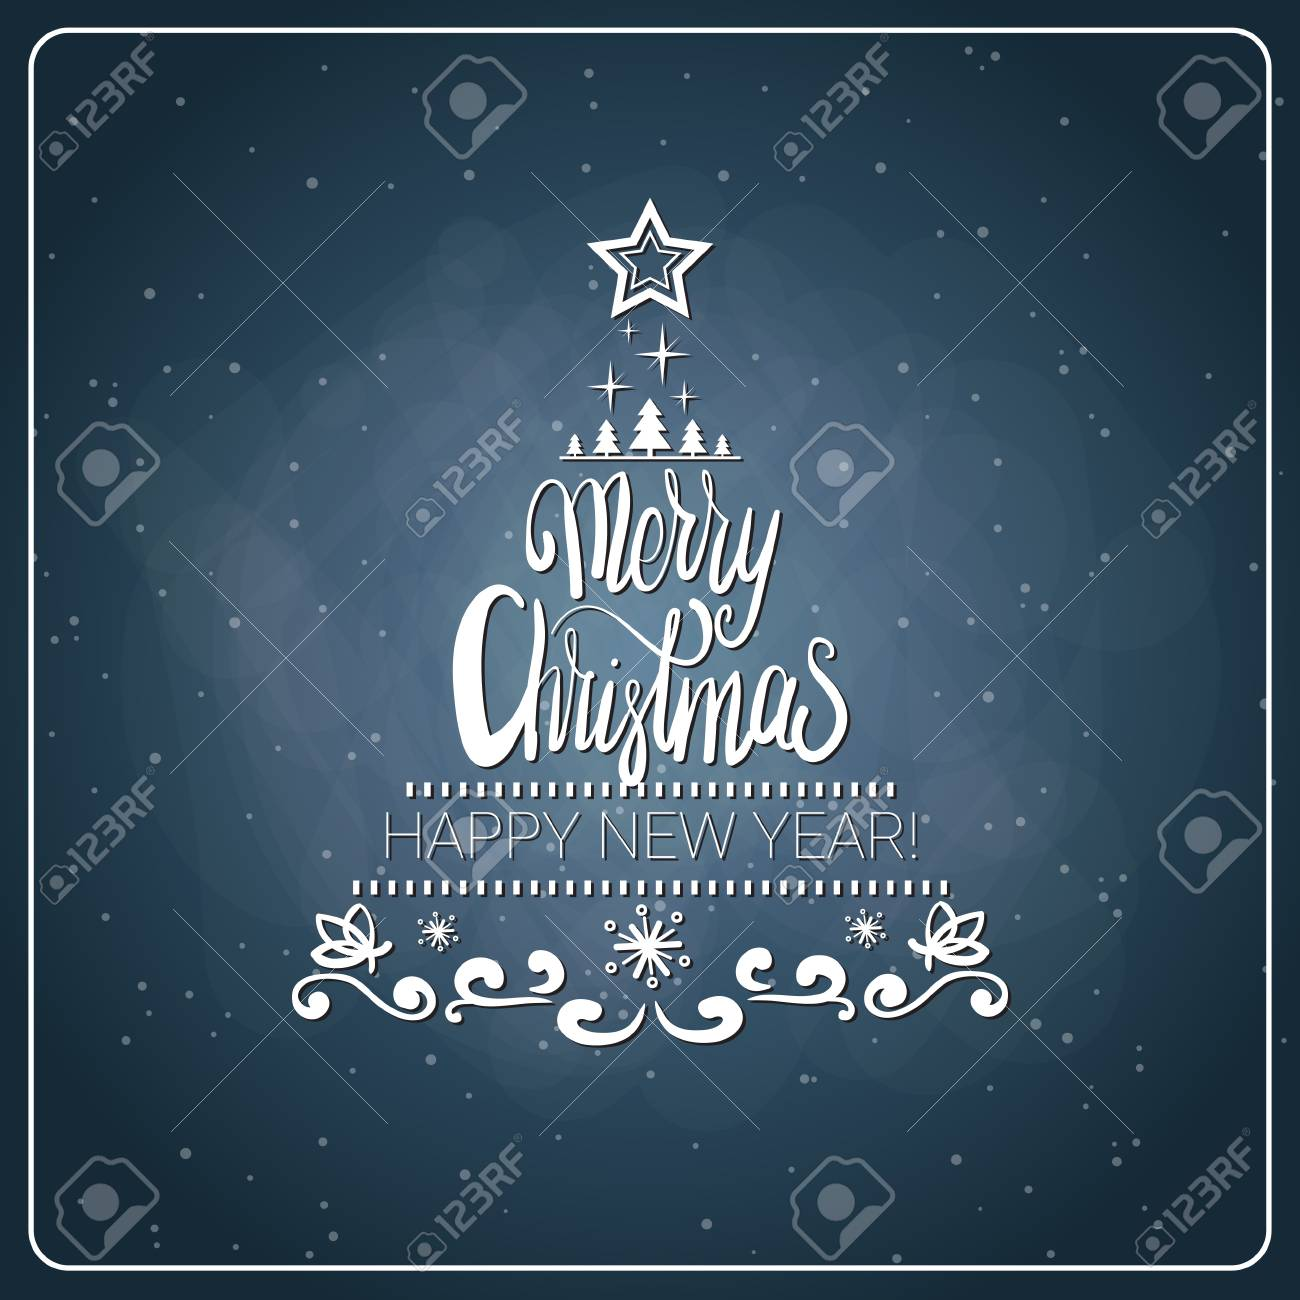 Christmas Board Design.Vintage Merry Christmas And Happy New Year Calligraphic Design